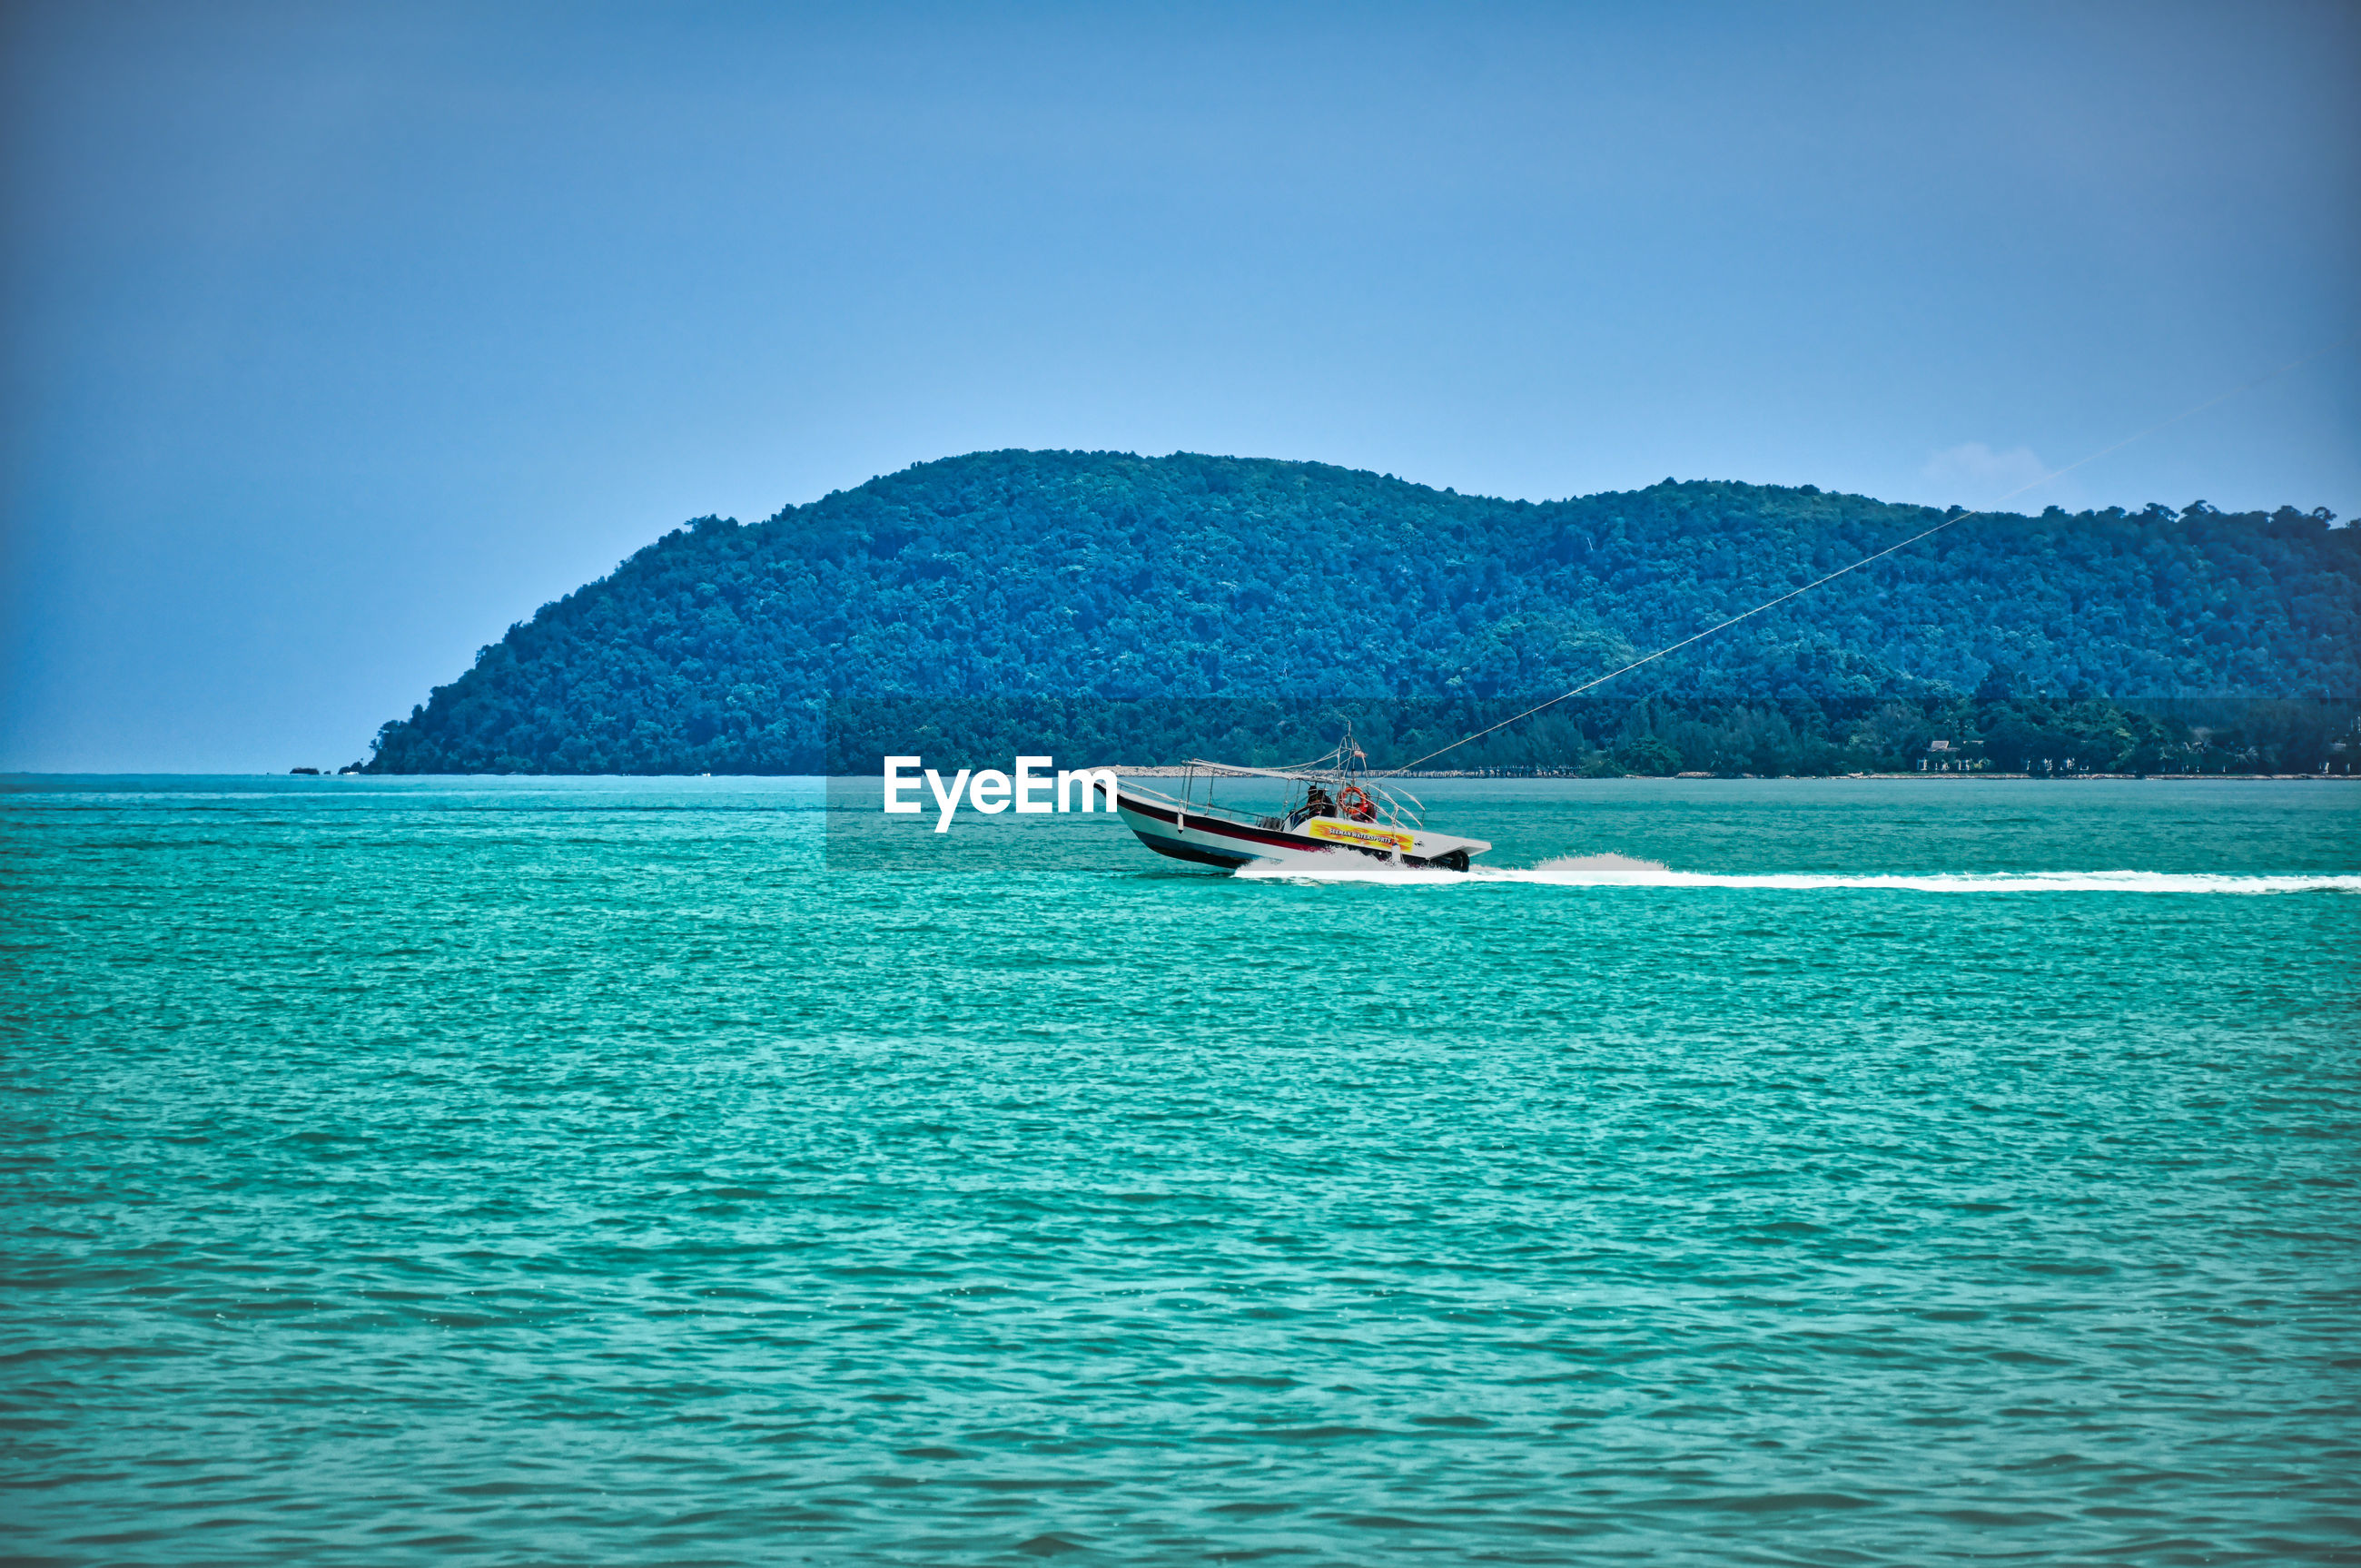 Speed boat on the waves of the azure andaman sea under the blue sky near the sandy beachshore